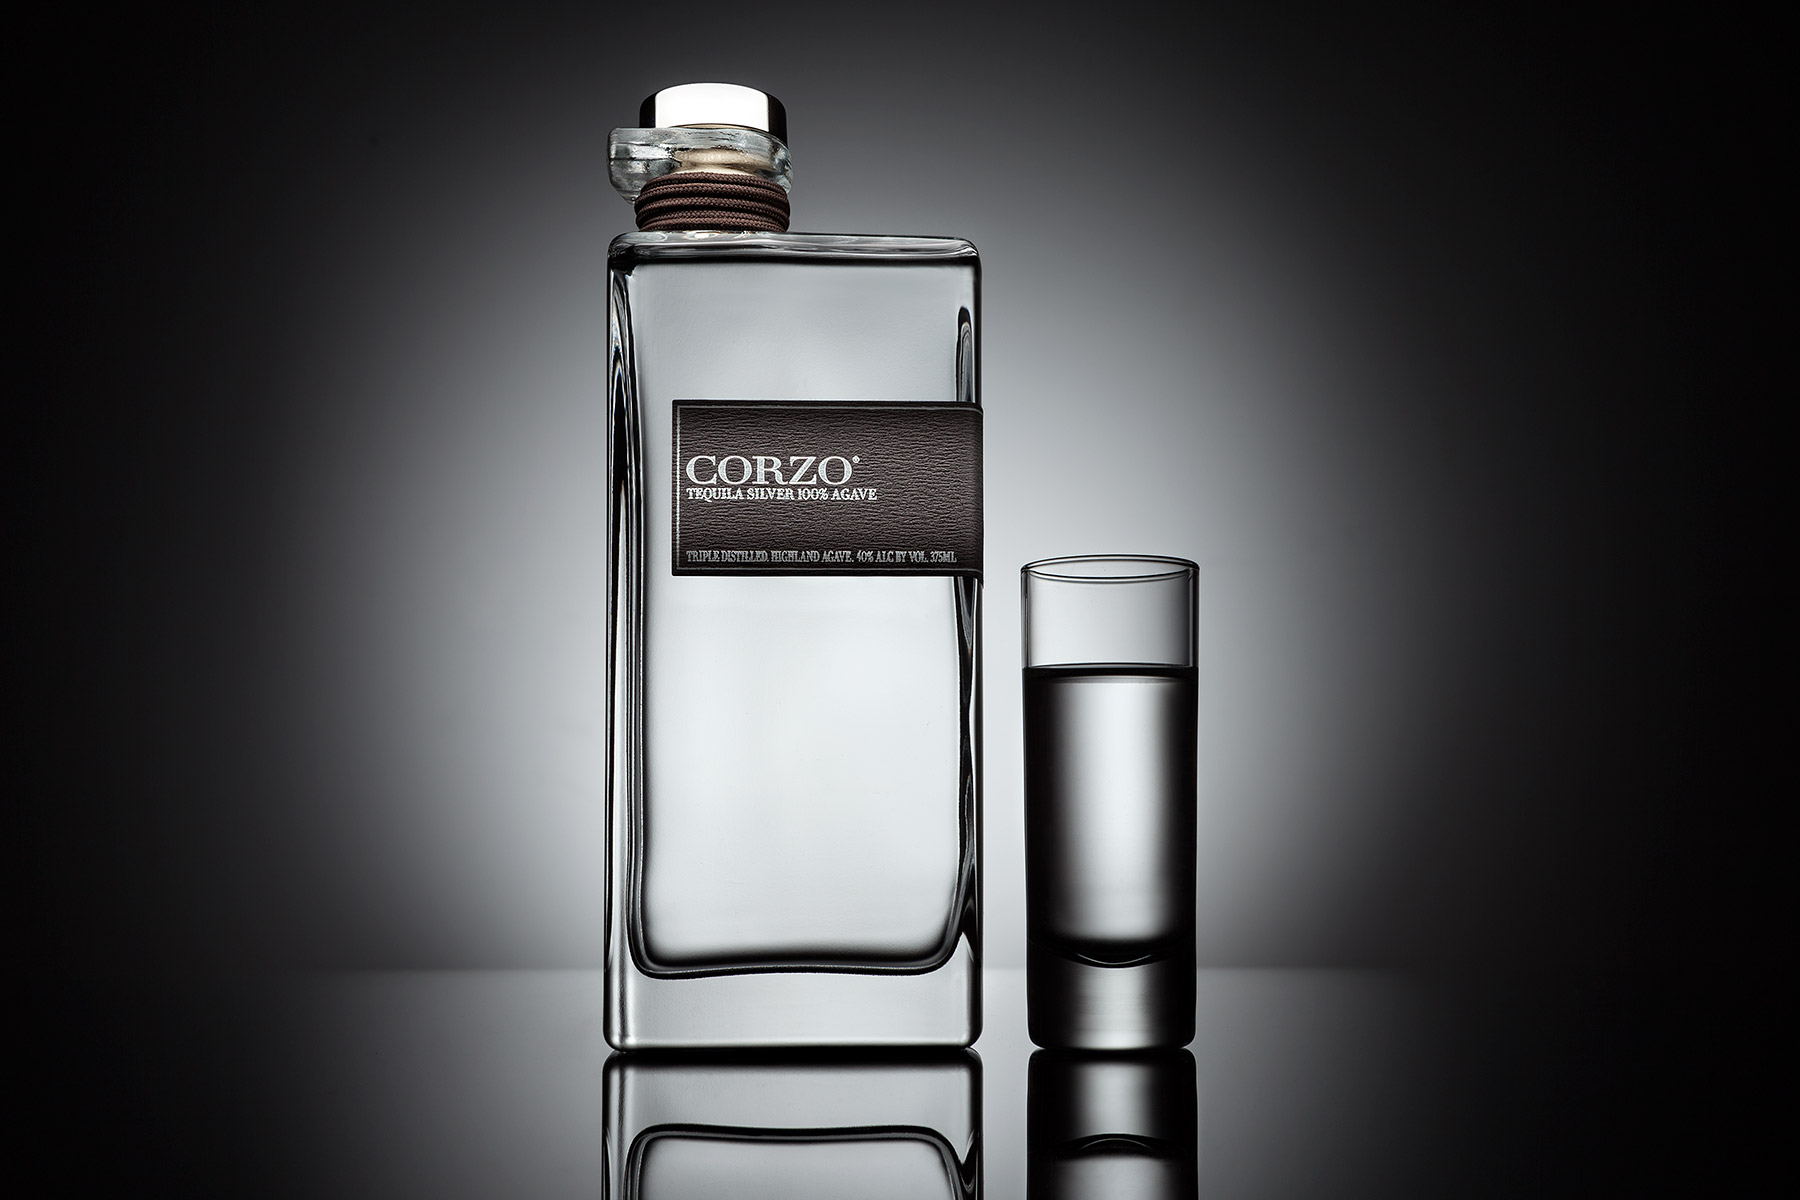 Corzo Tequila Bottle | Dovis Bird Agency Reps